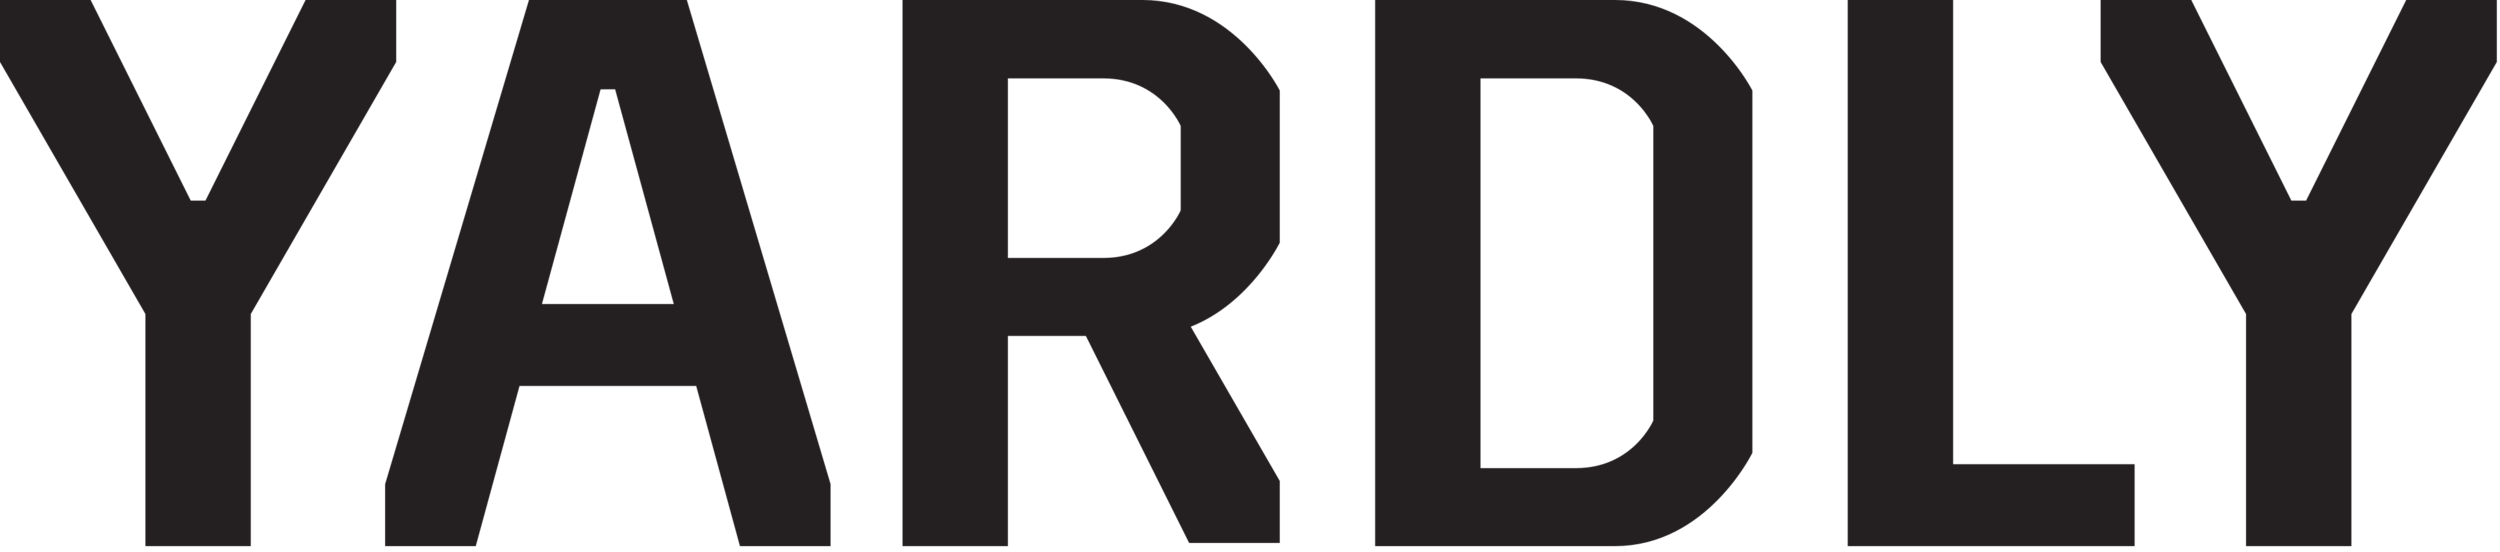 wordmark-black-hires.png